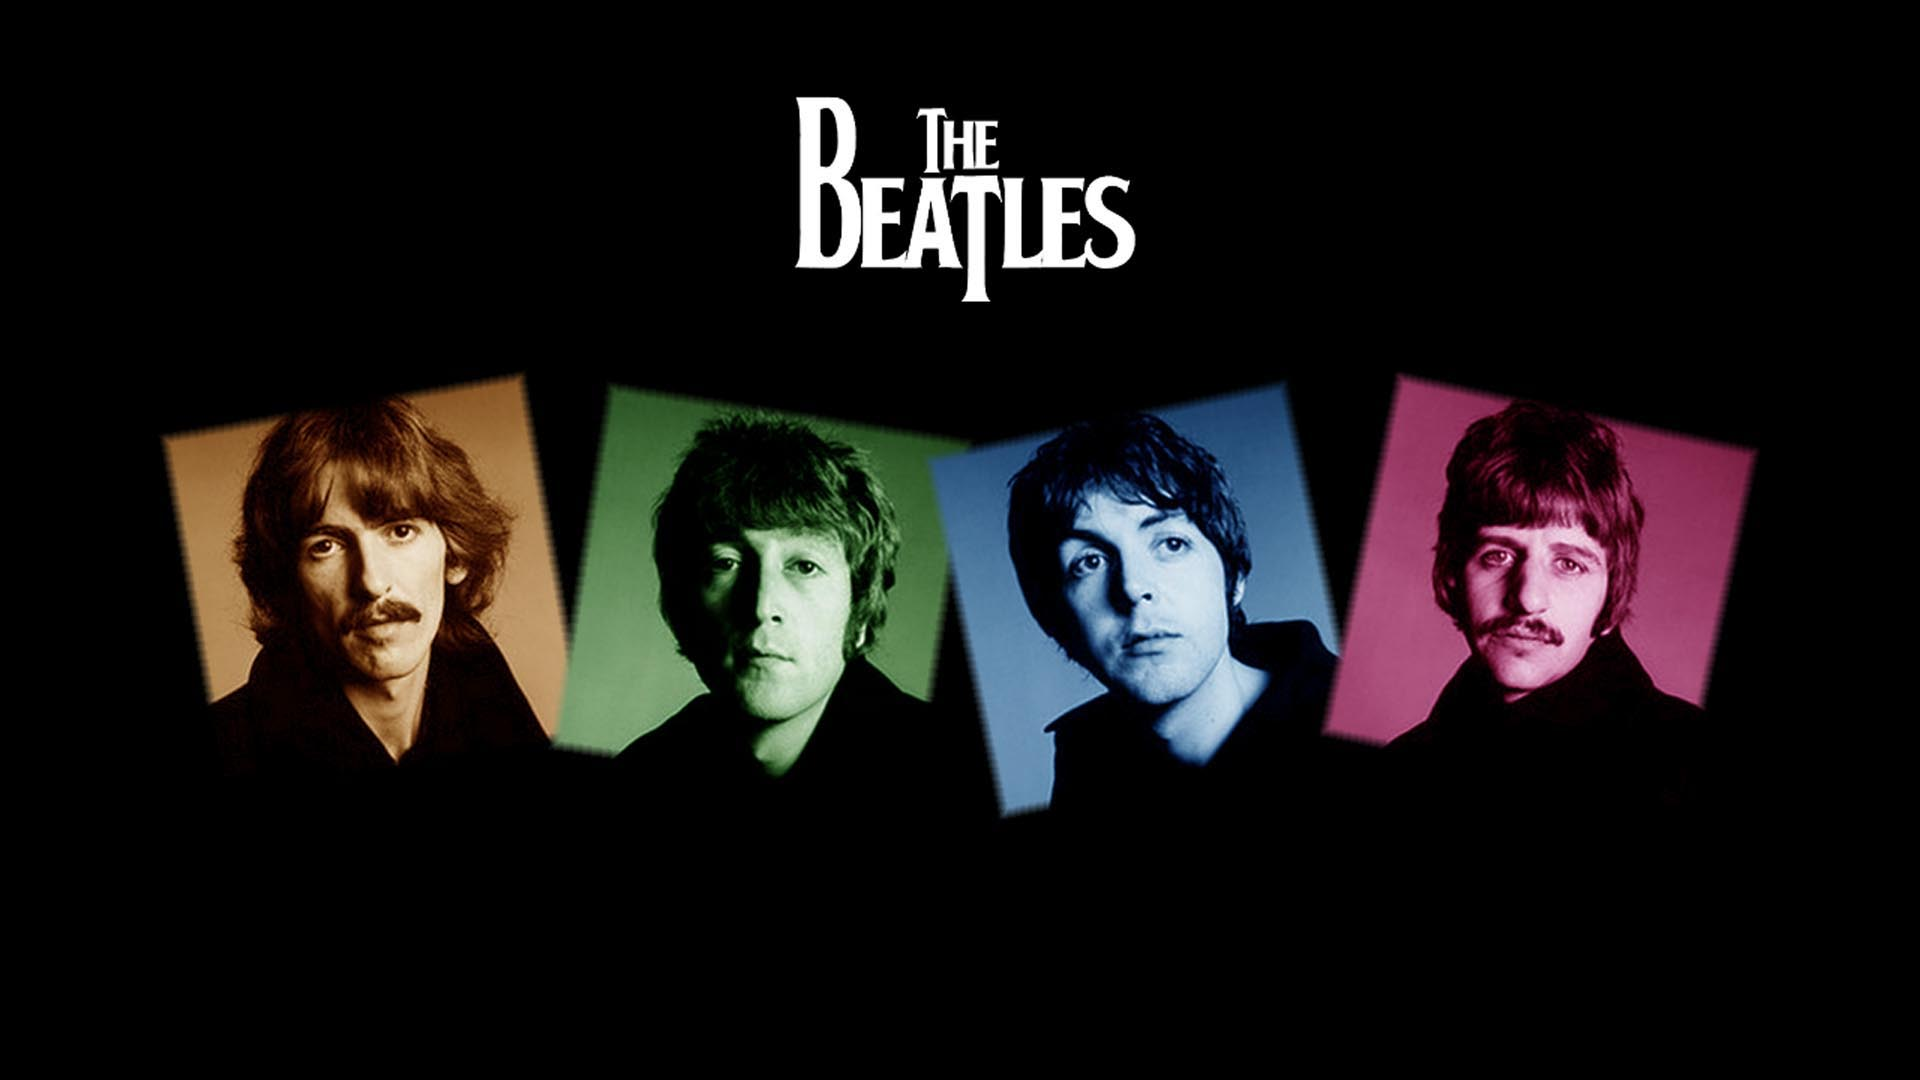 Wallpaper The Beatles IPhone Facebook Cover Twitter